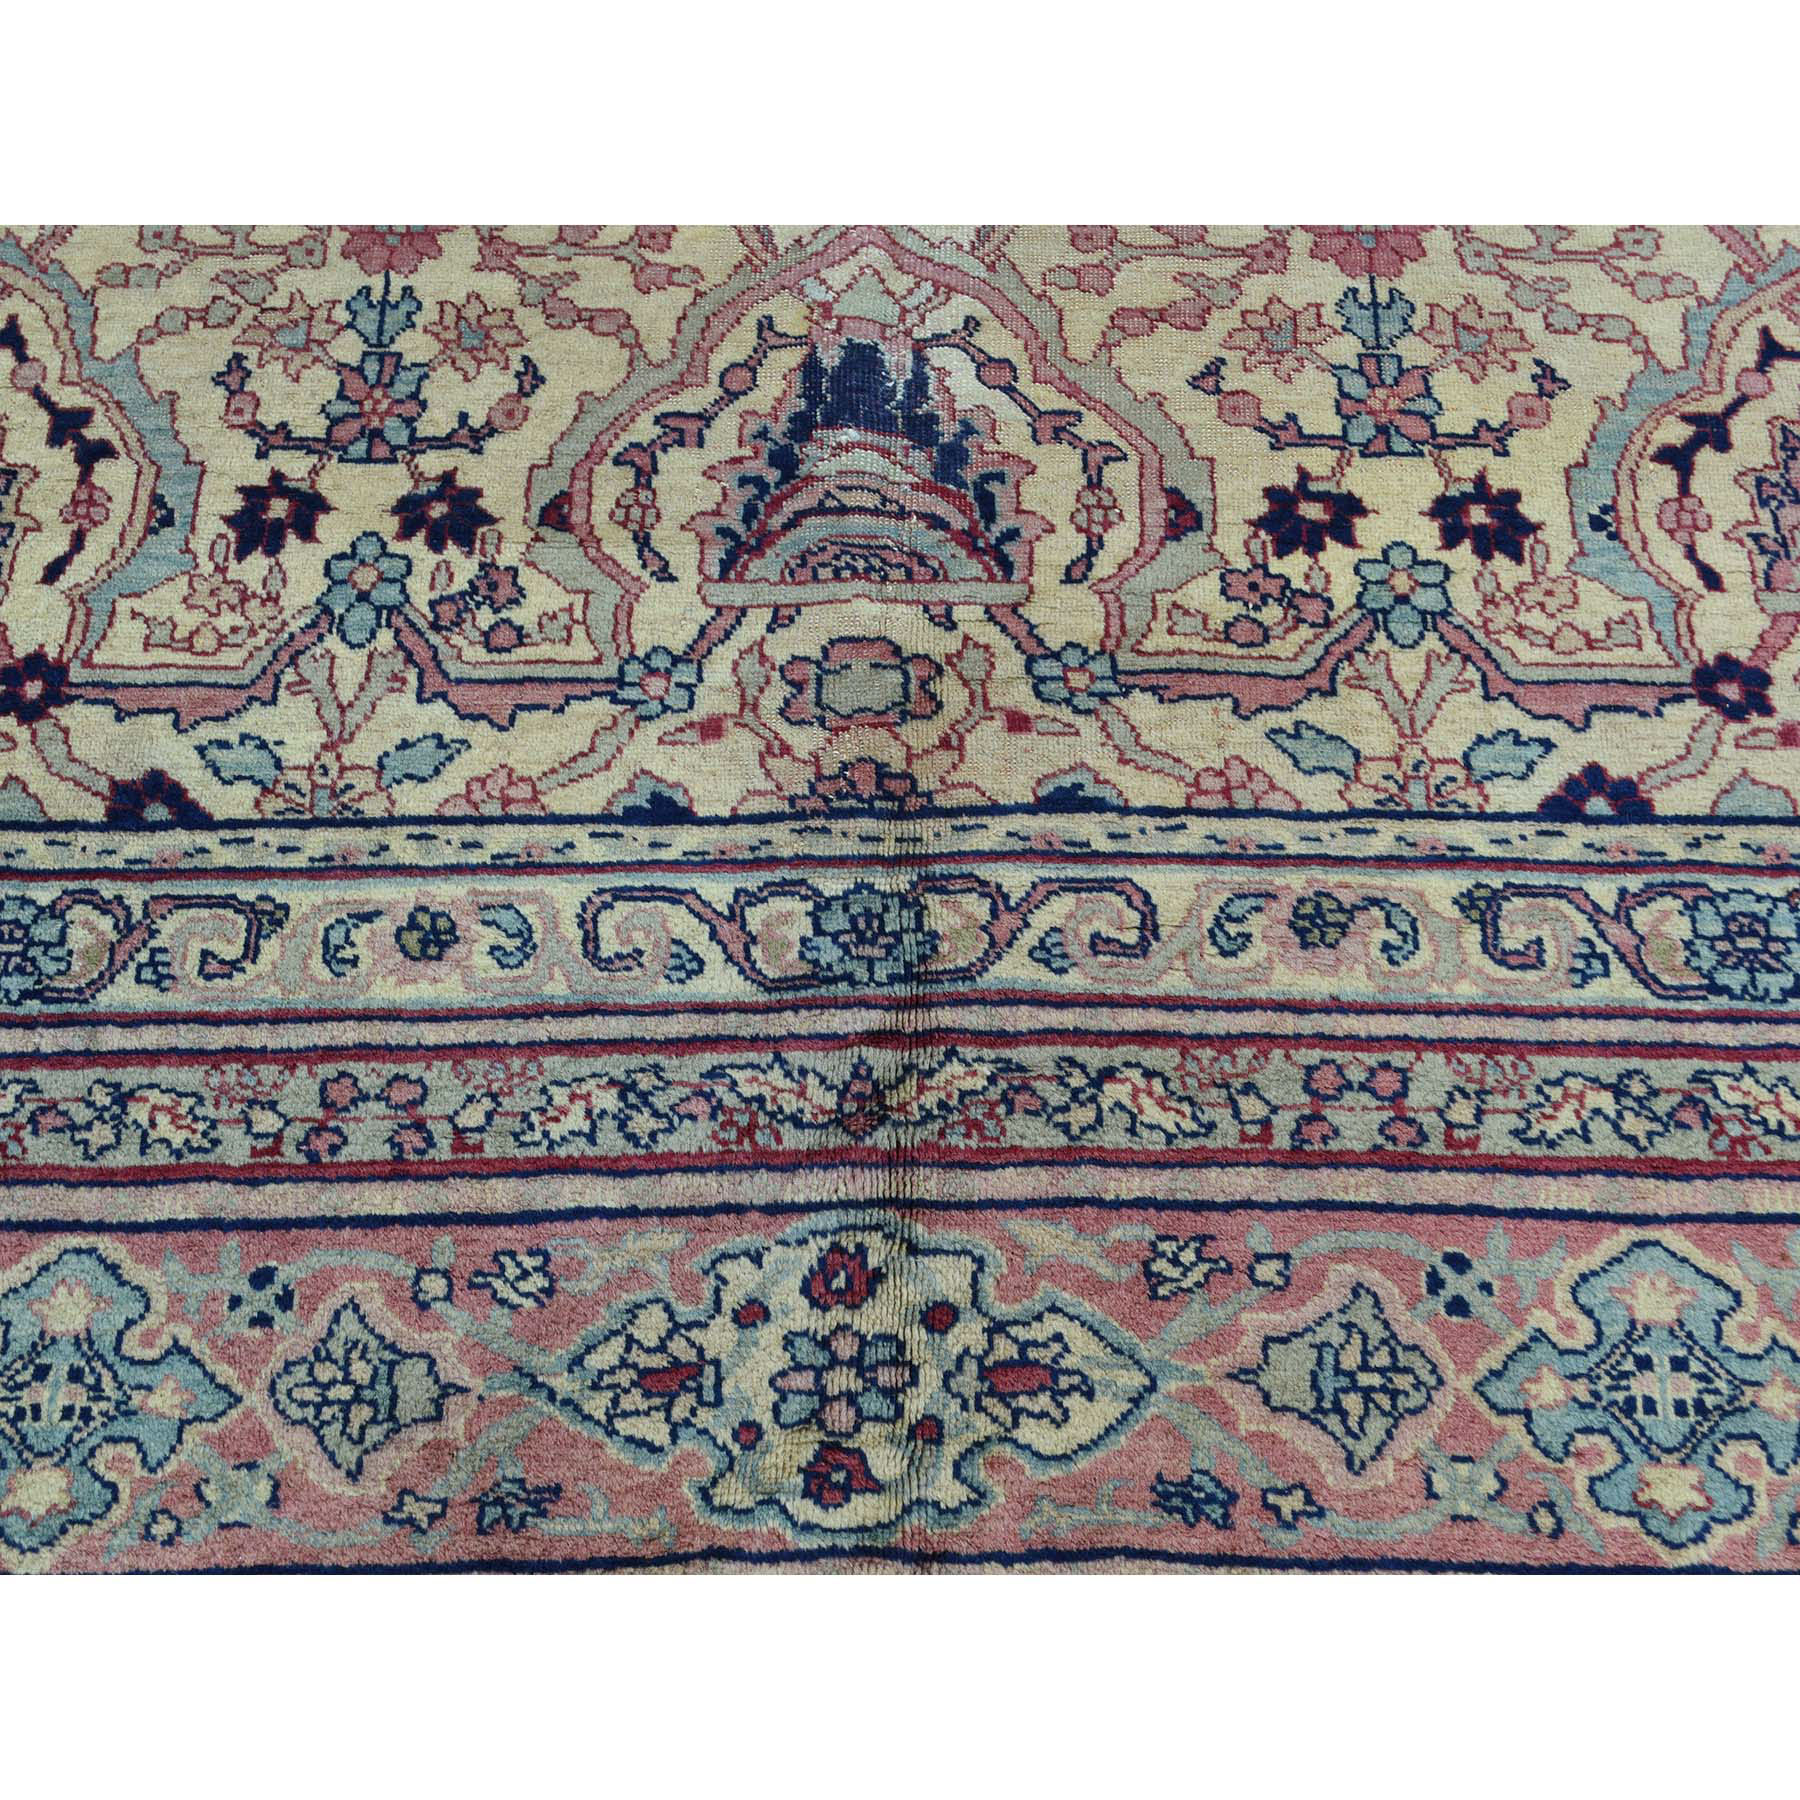 7-2 x12-6  Antique Turkish Sivas Mint Cond Gallery Size Hand-Knotted Rug